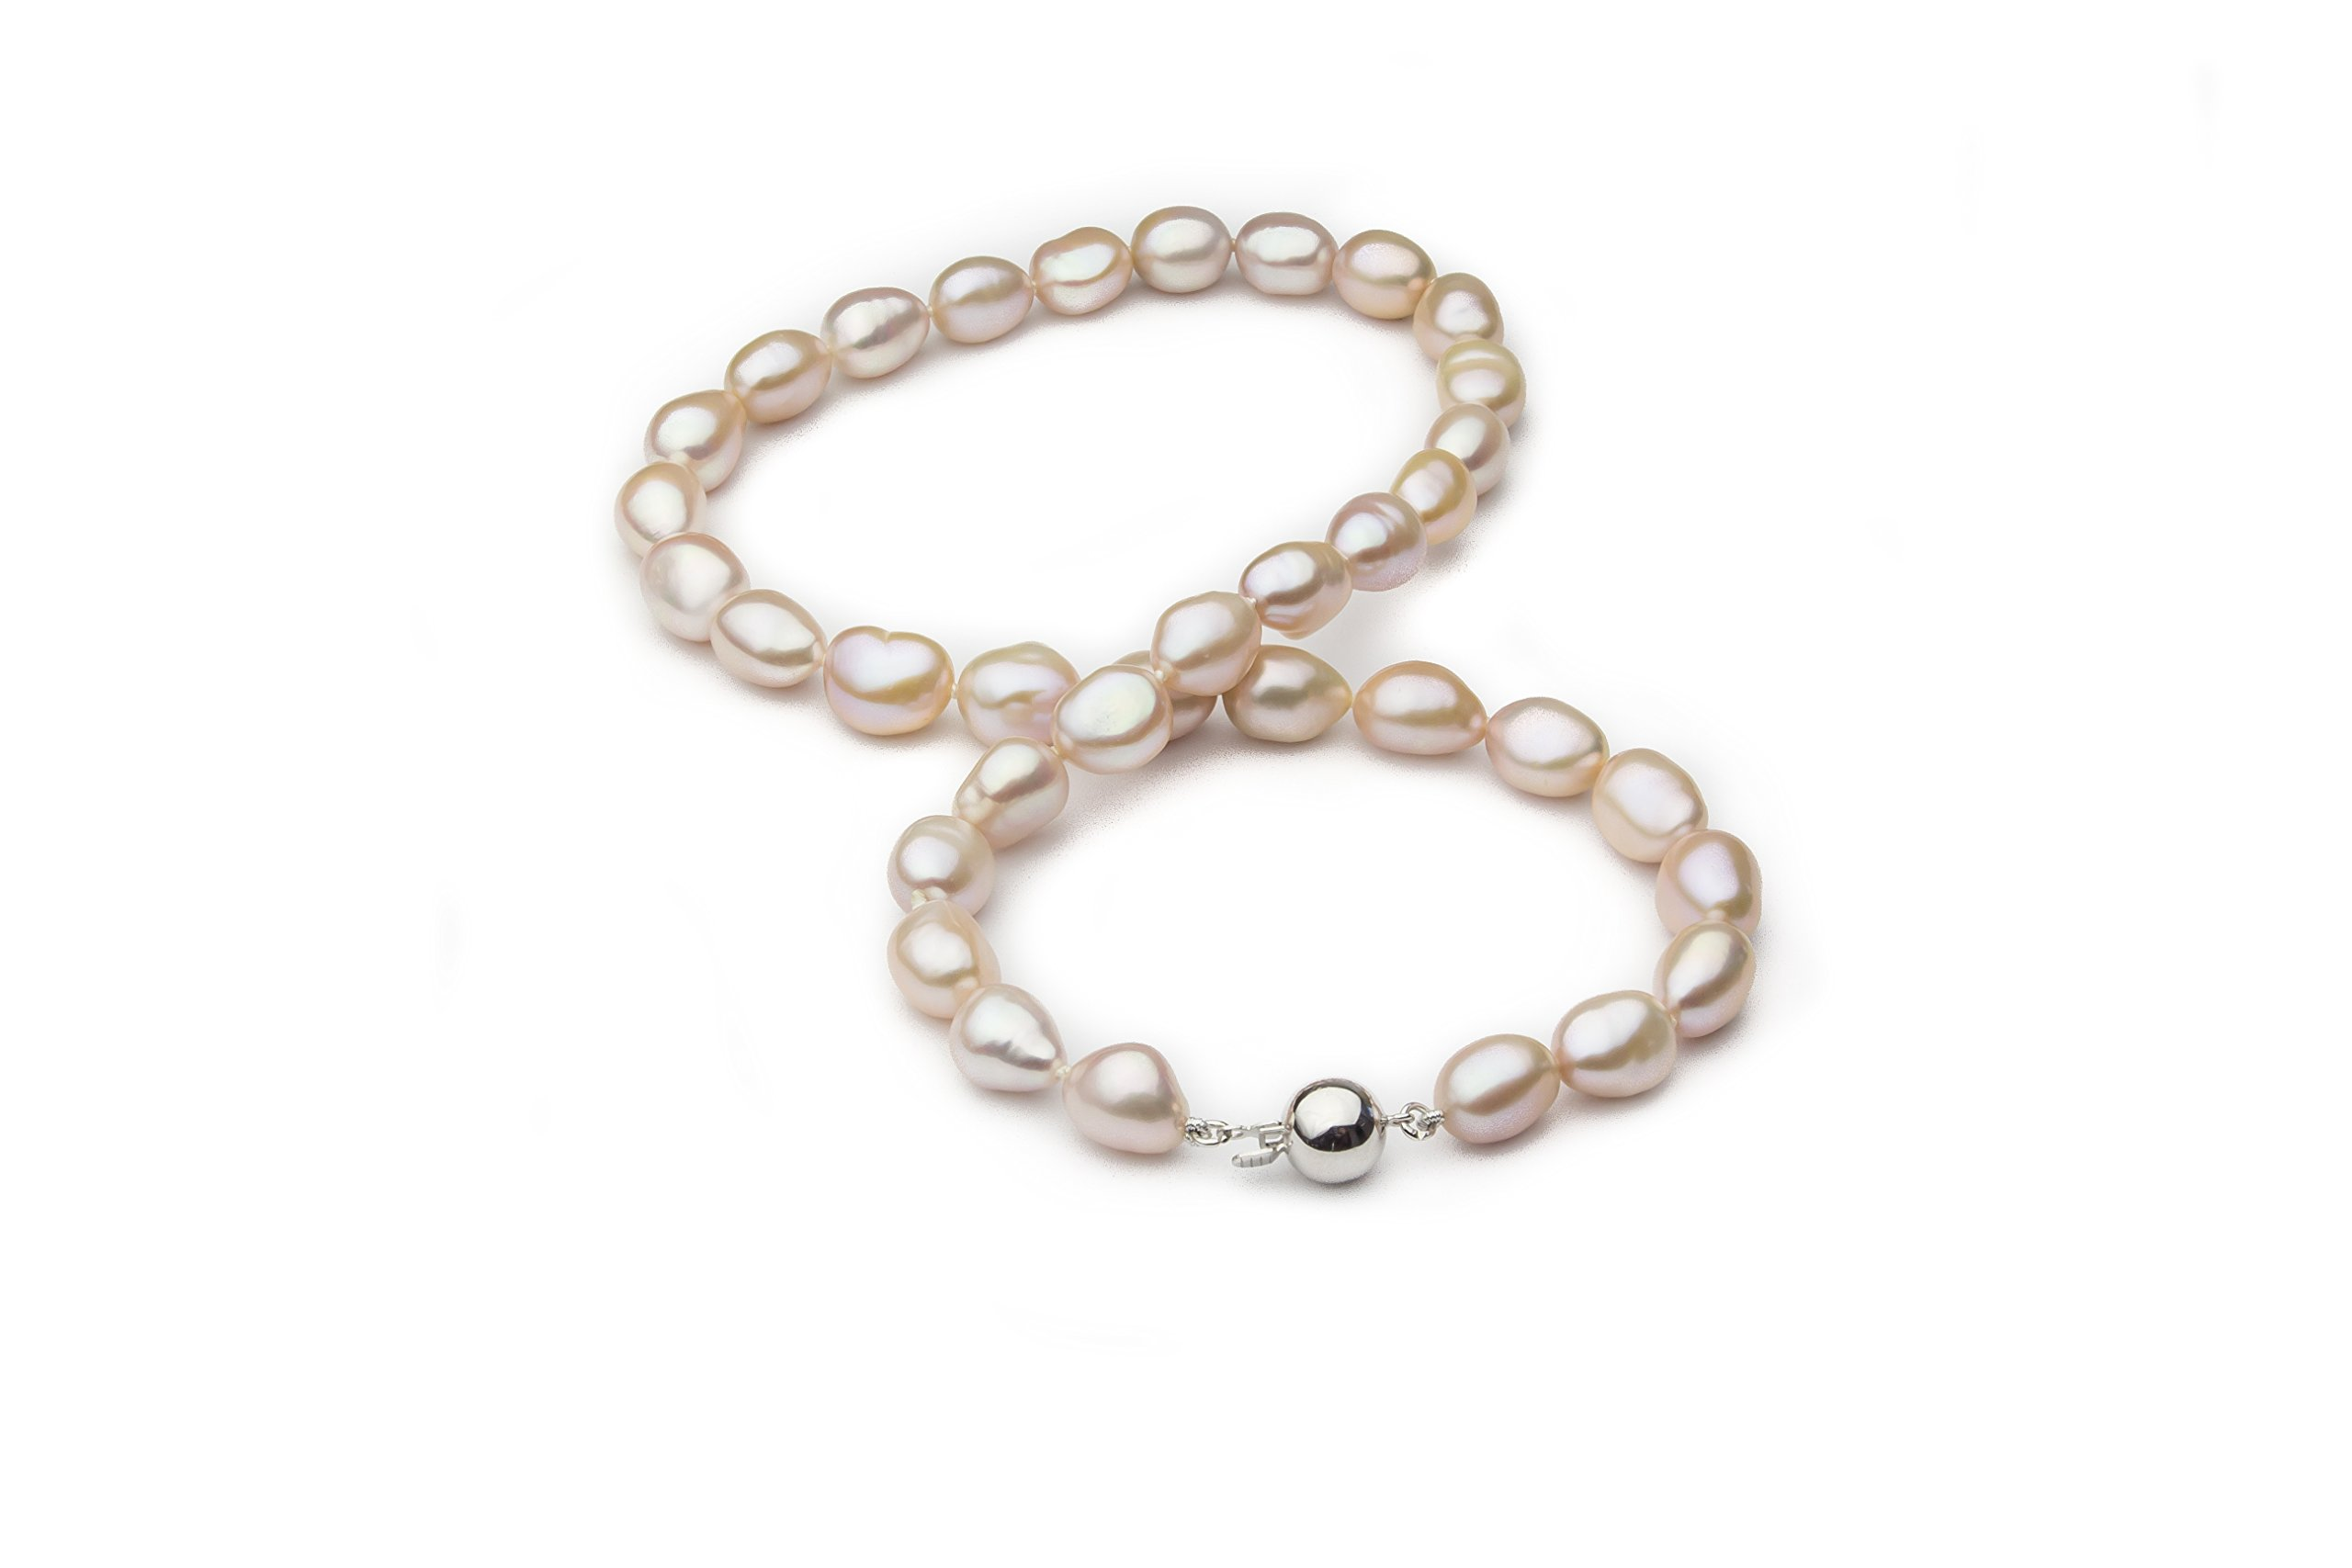 HinsonGayle AAA Handpicked 10-11mm Pink Baroque Freshwater Cultured Pearl Necklace (Silver )-18 in length by HinsonGayle Fine Pearl Jewelry (Image #3)